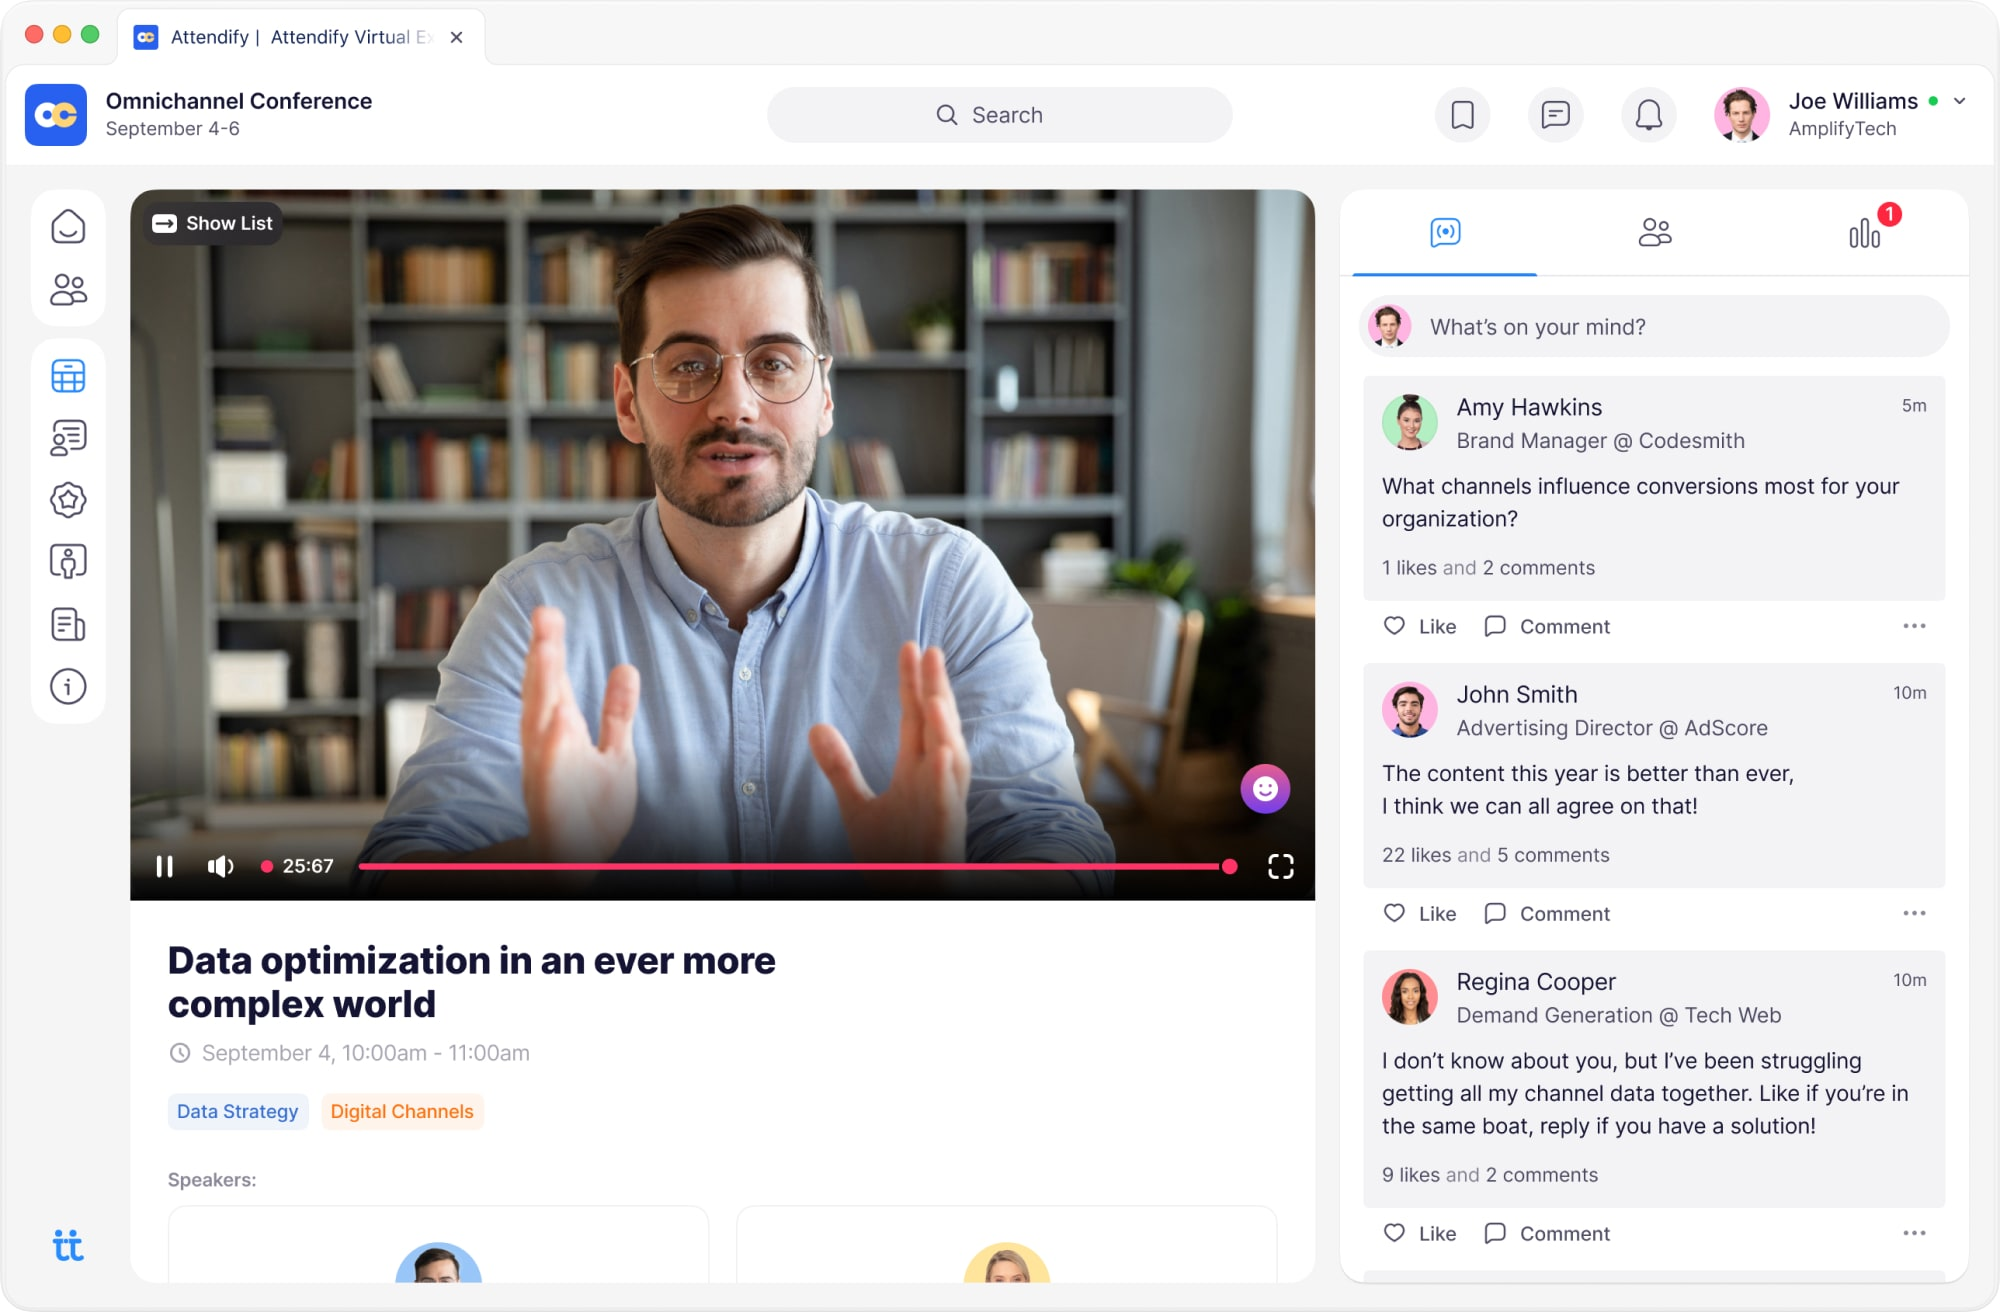 Create engaging virtual experiences at online events with Attendify's native live streaming or 3rd-party streaming options